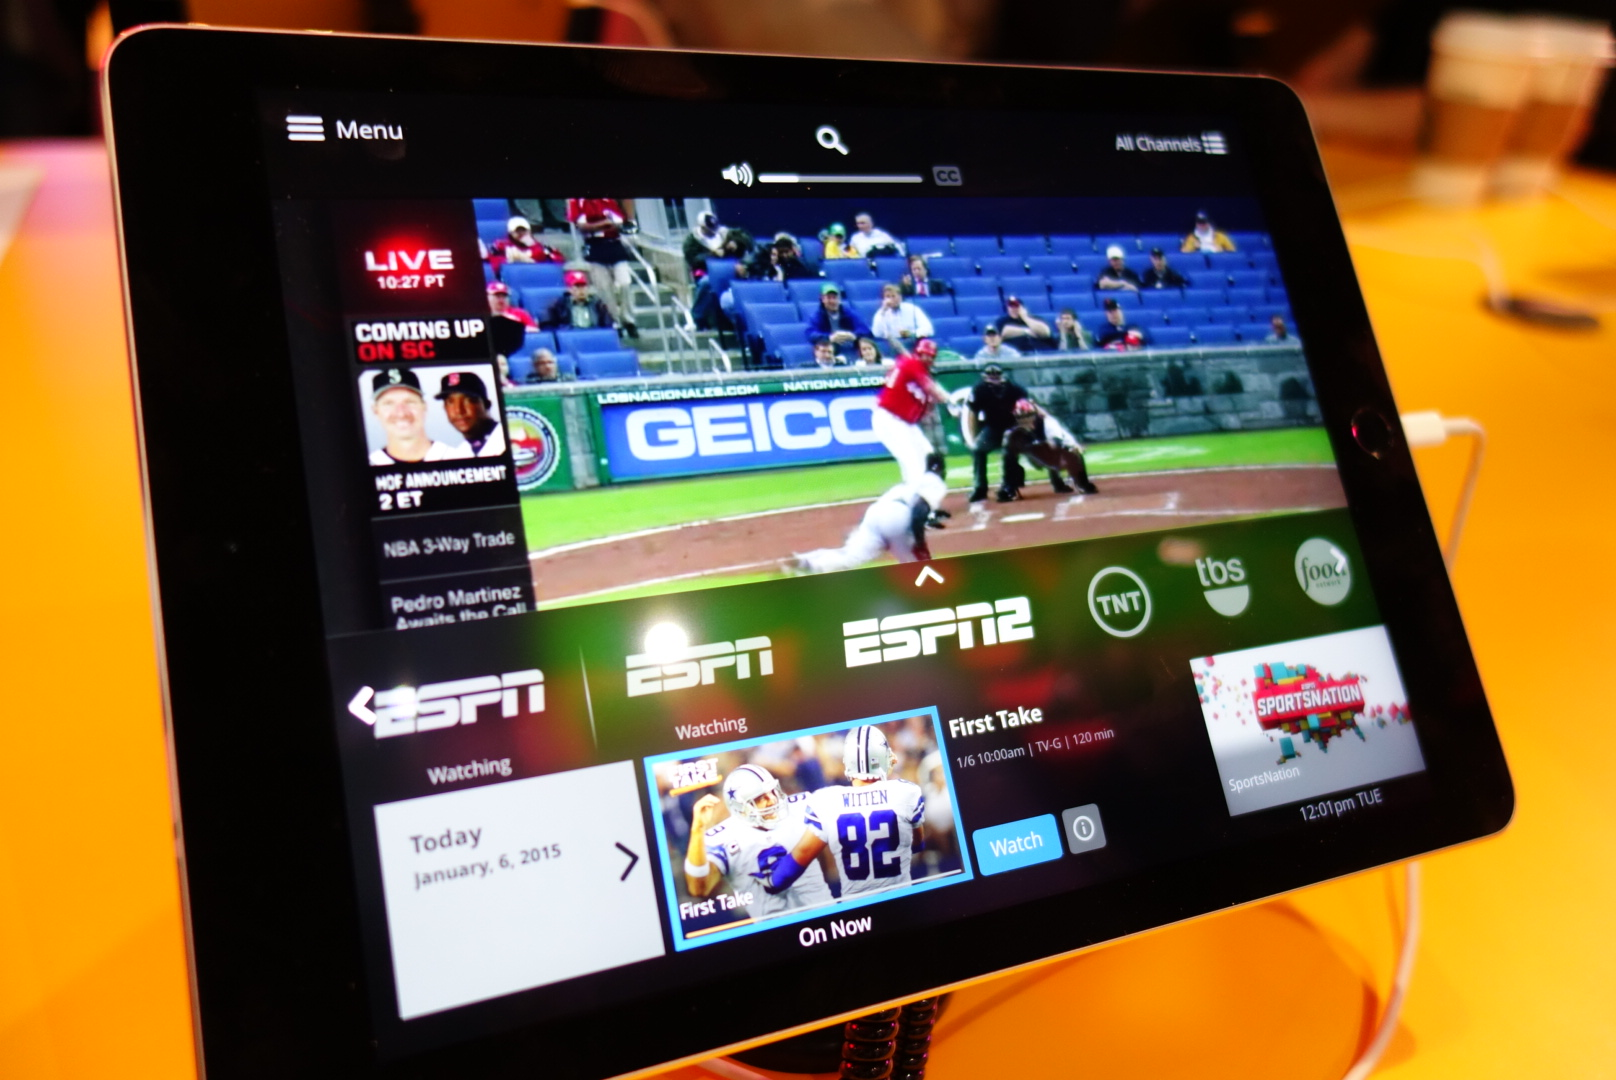 Dish's Sling TV Streaming Service Wins Best Of CES Award